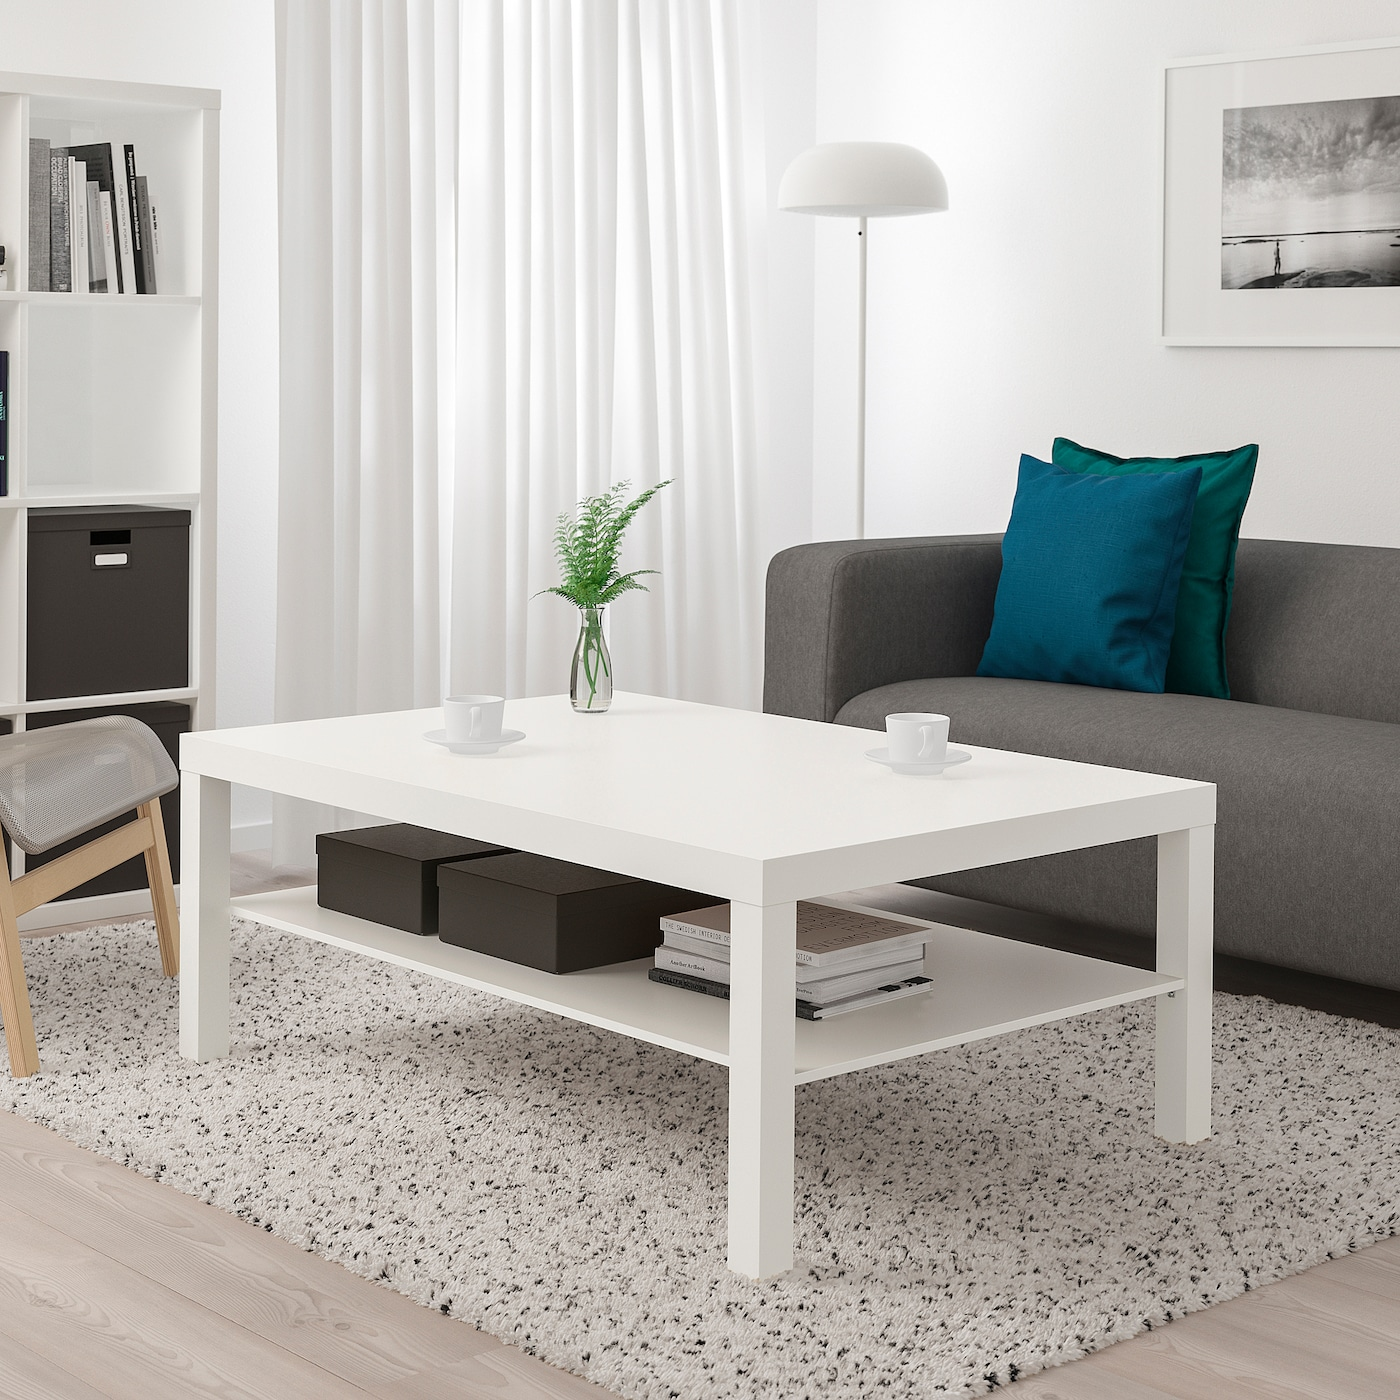 Lack Coffee Table White 46 1 2x30 3 4 Ikea